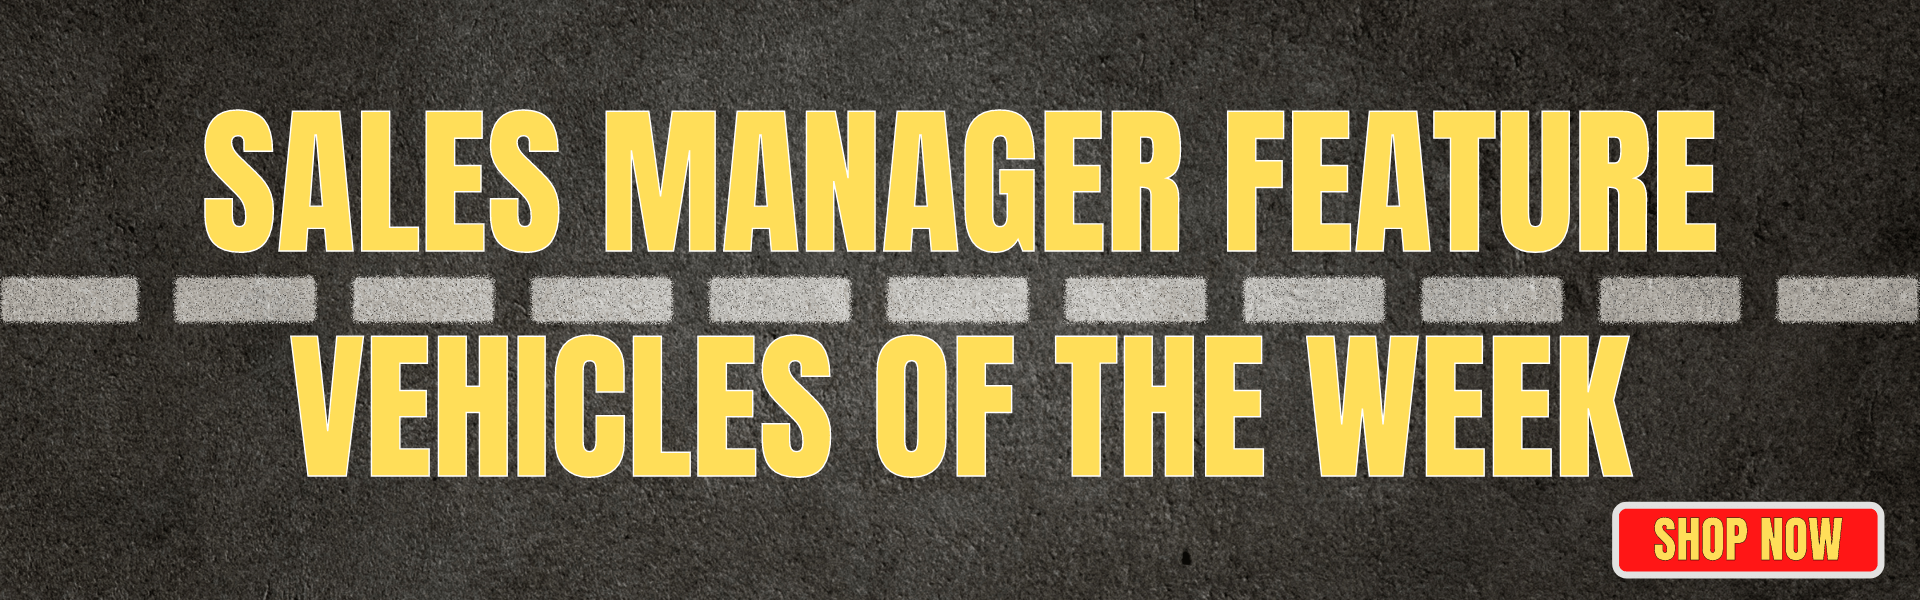 SALES MANAGER FEATURE VEHICLES OF THE WEEK